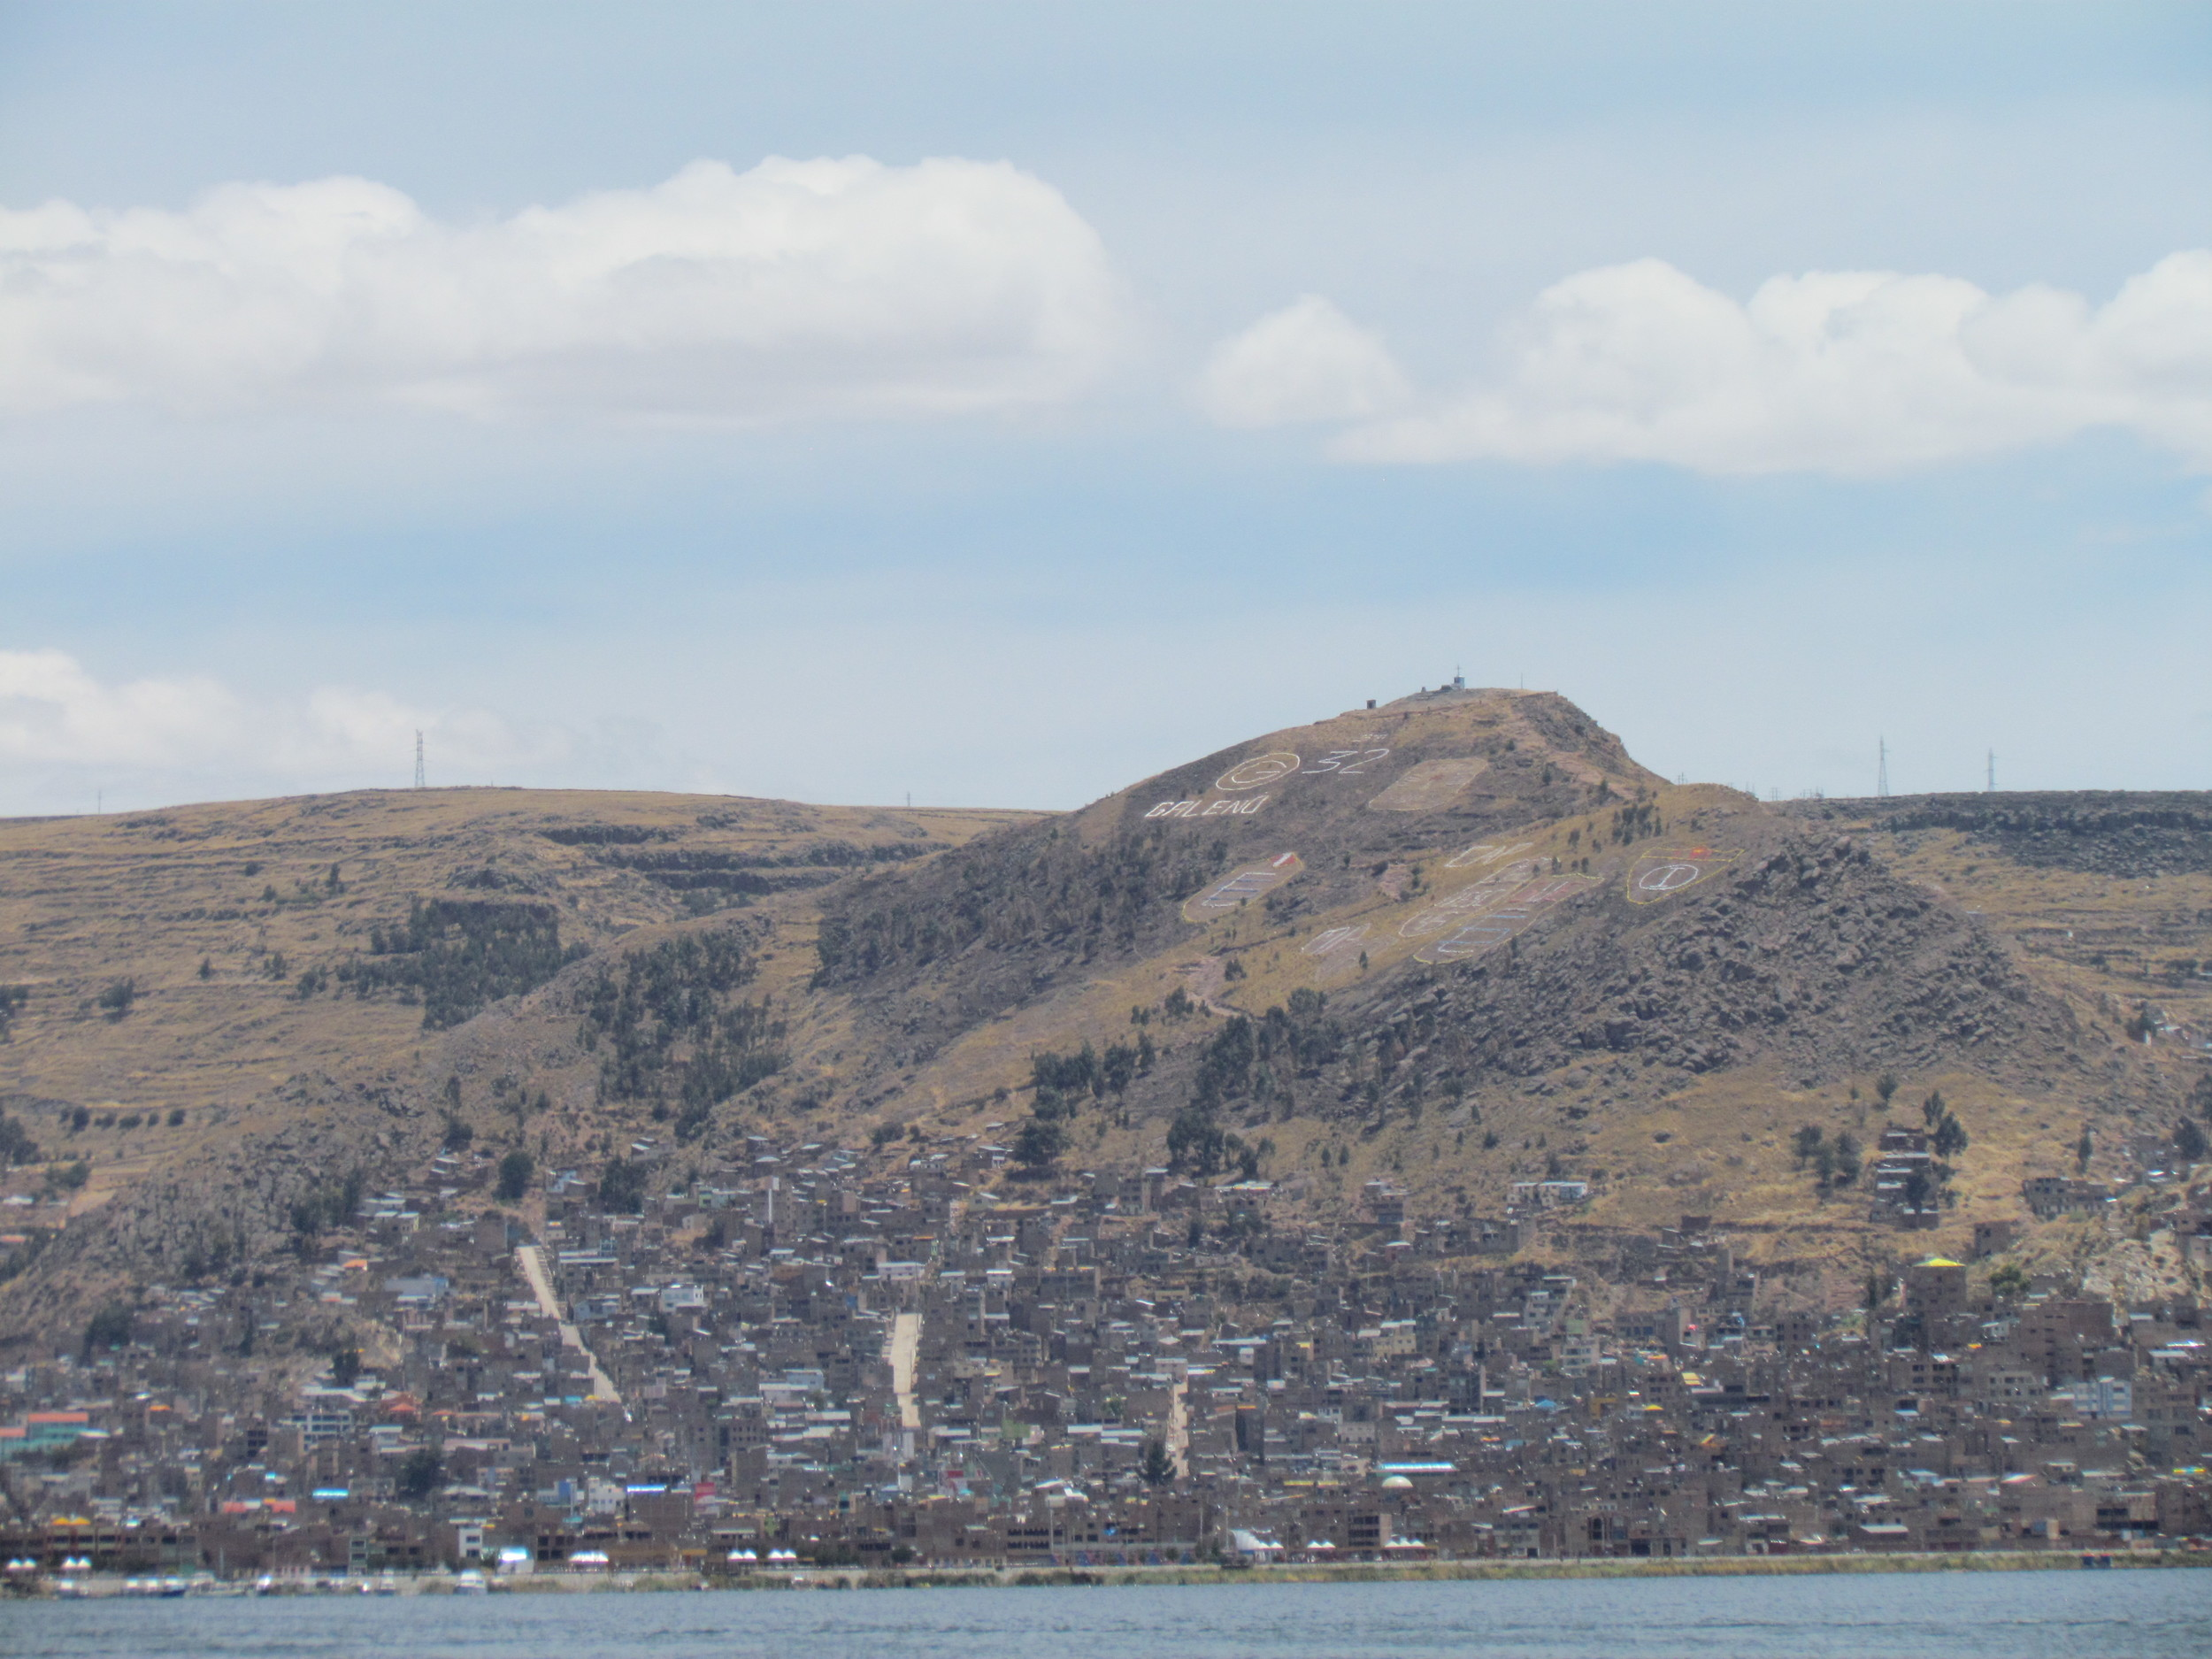 We got a good look of Puno on our way back